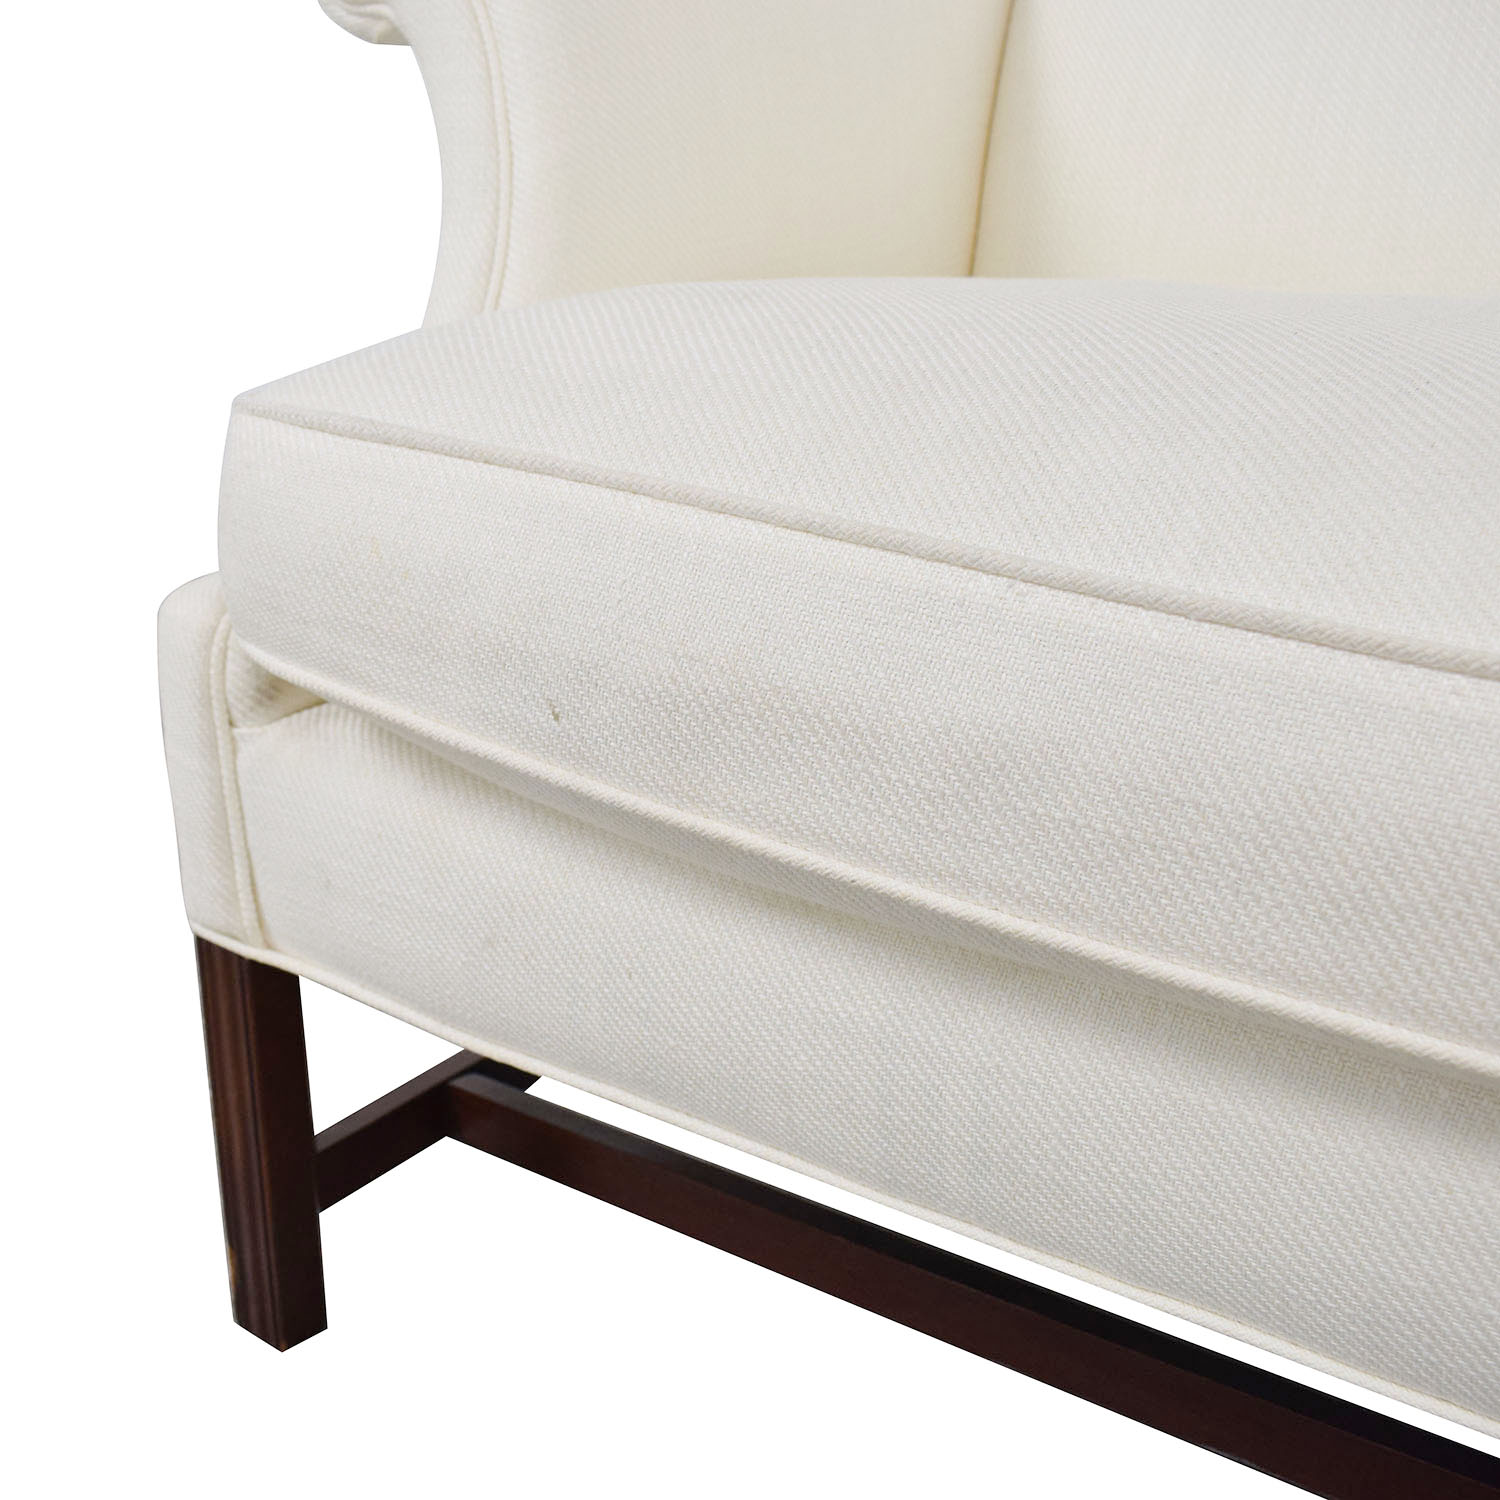 White Linen Camel Back Couch price